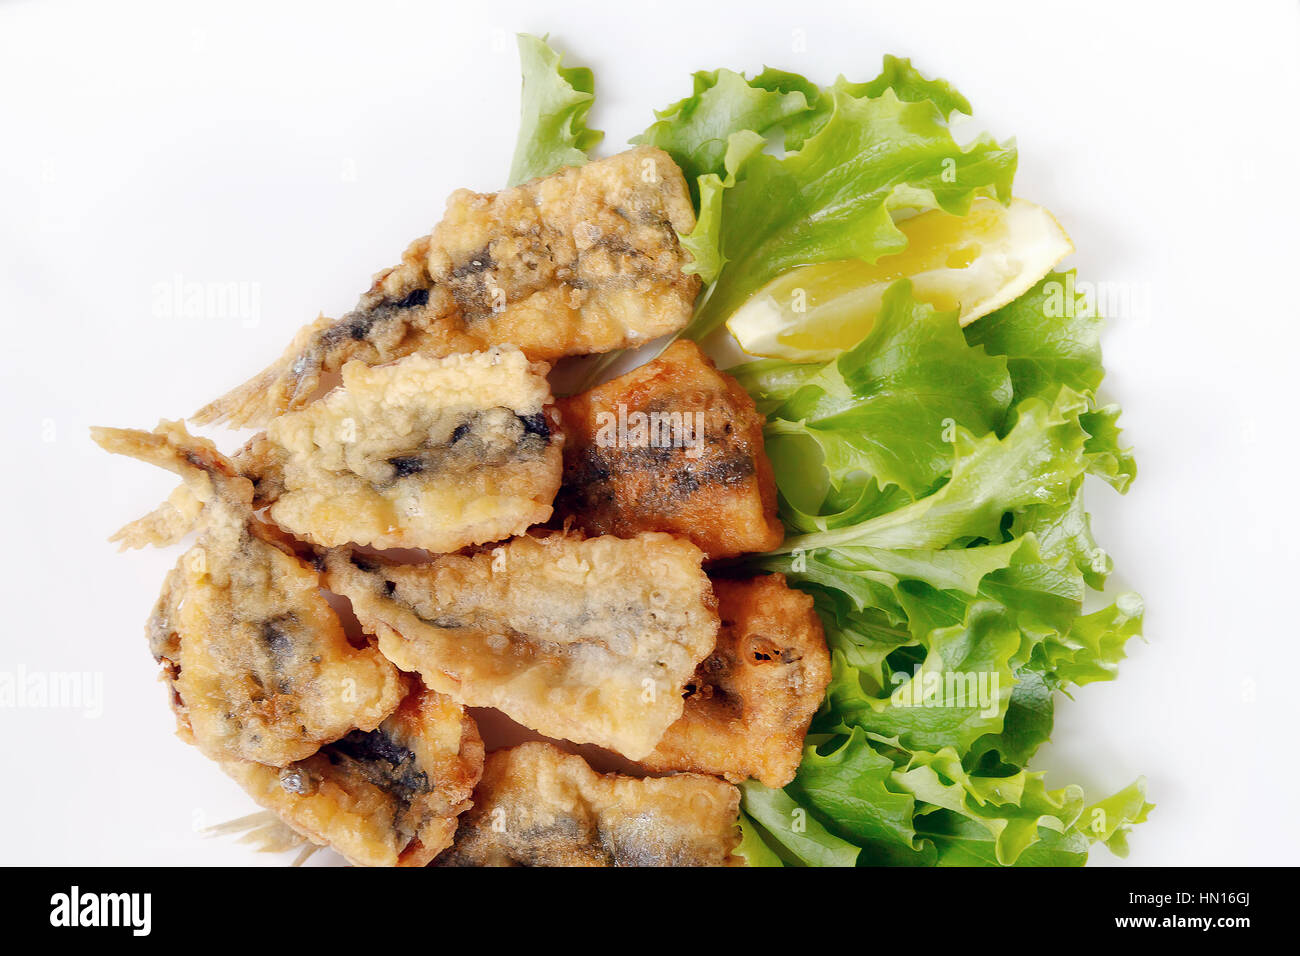 Typical dish of Neapolitan cuisine in Italy. Anchovies breaded in flour, then egg, fried in peanut oil. Ready meal - Stock Image